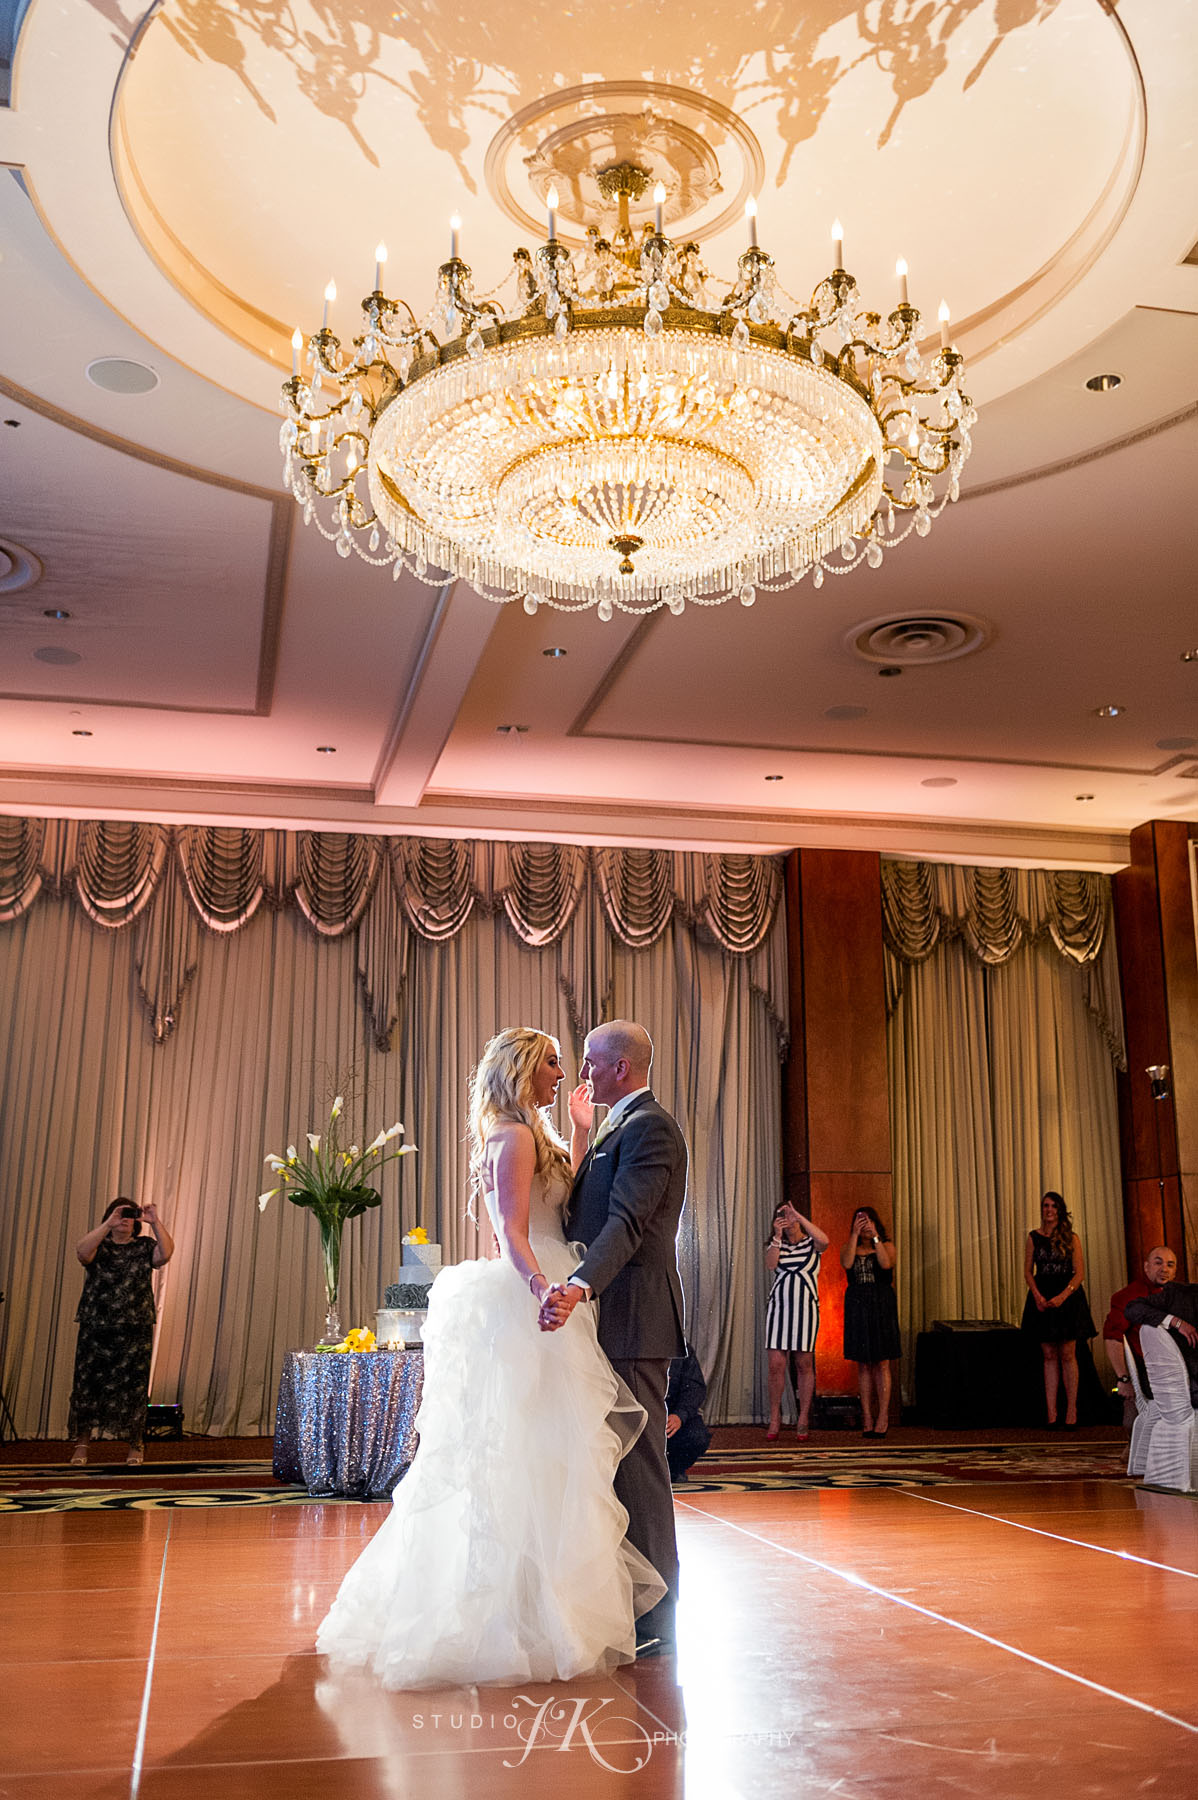 chair covers gray wooden doll high plans cloud 9 wedding at the brown palace hotel